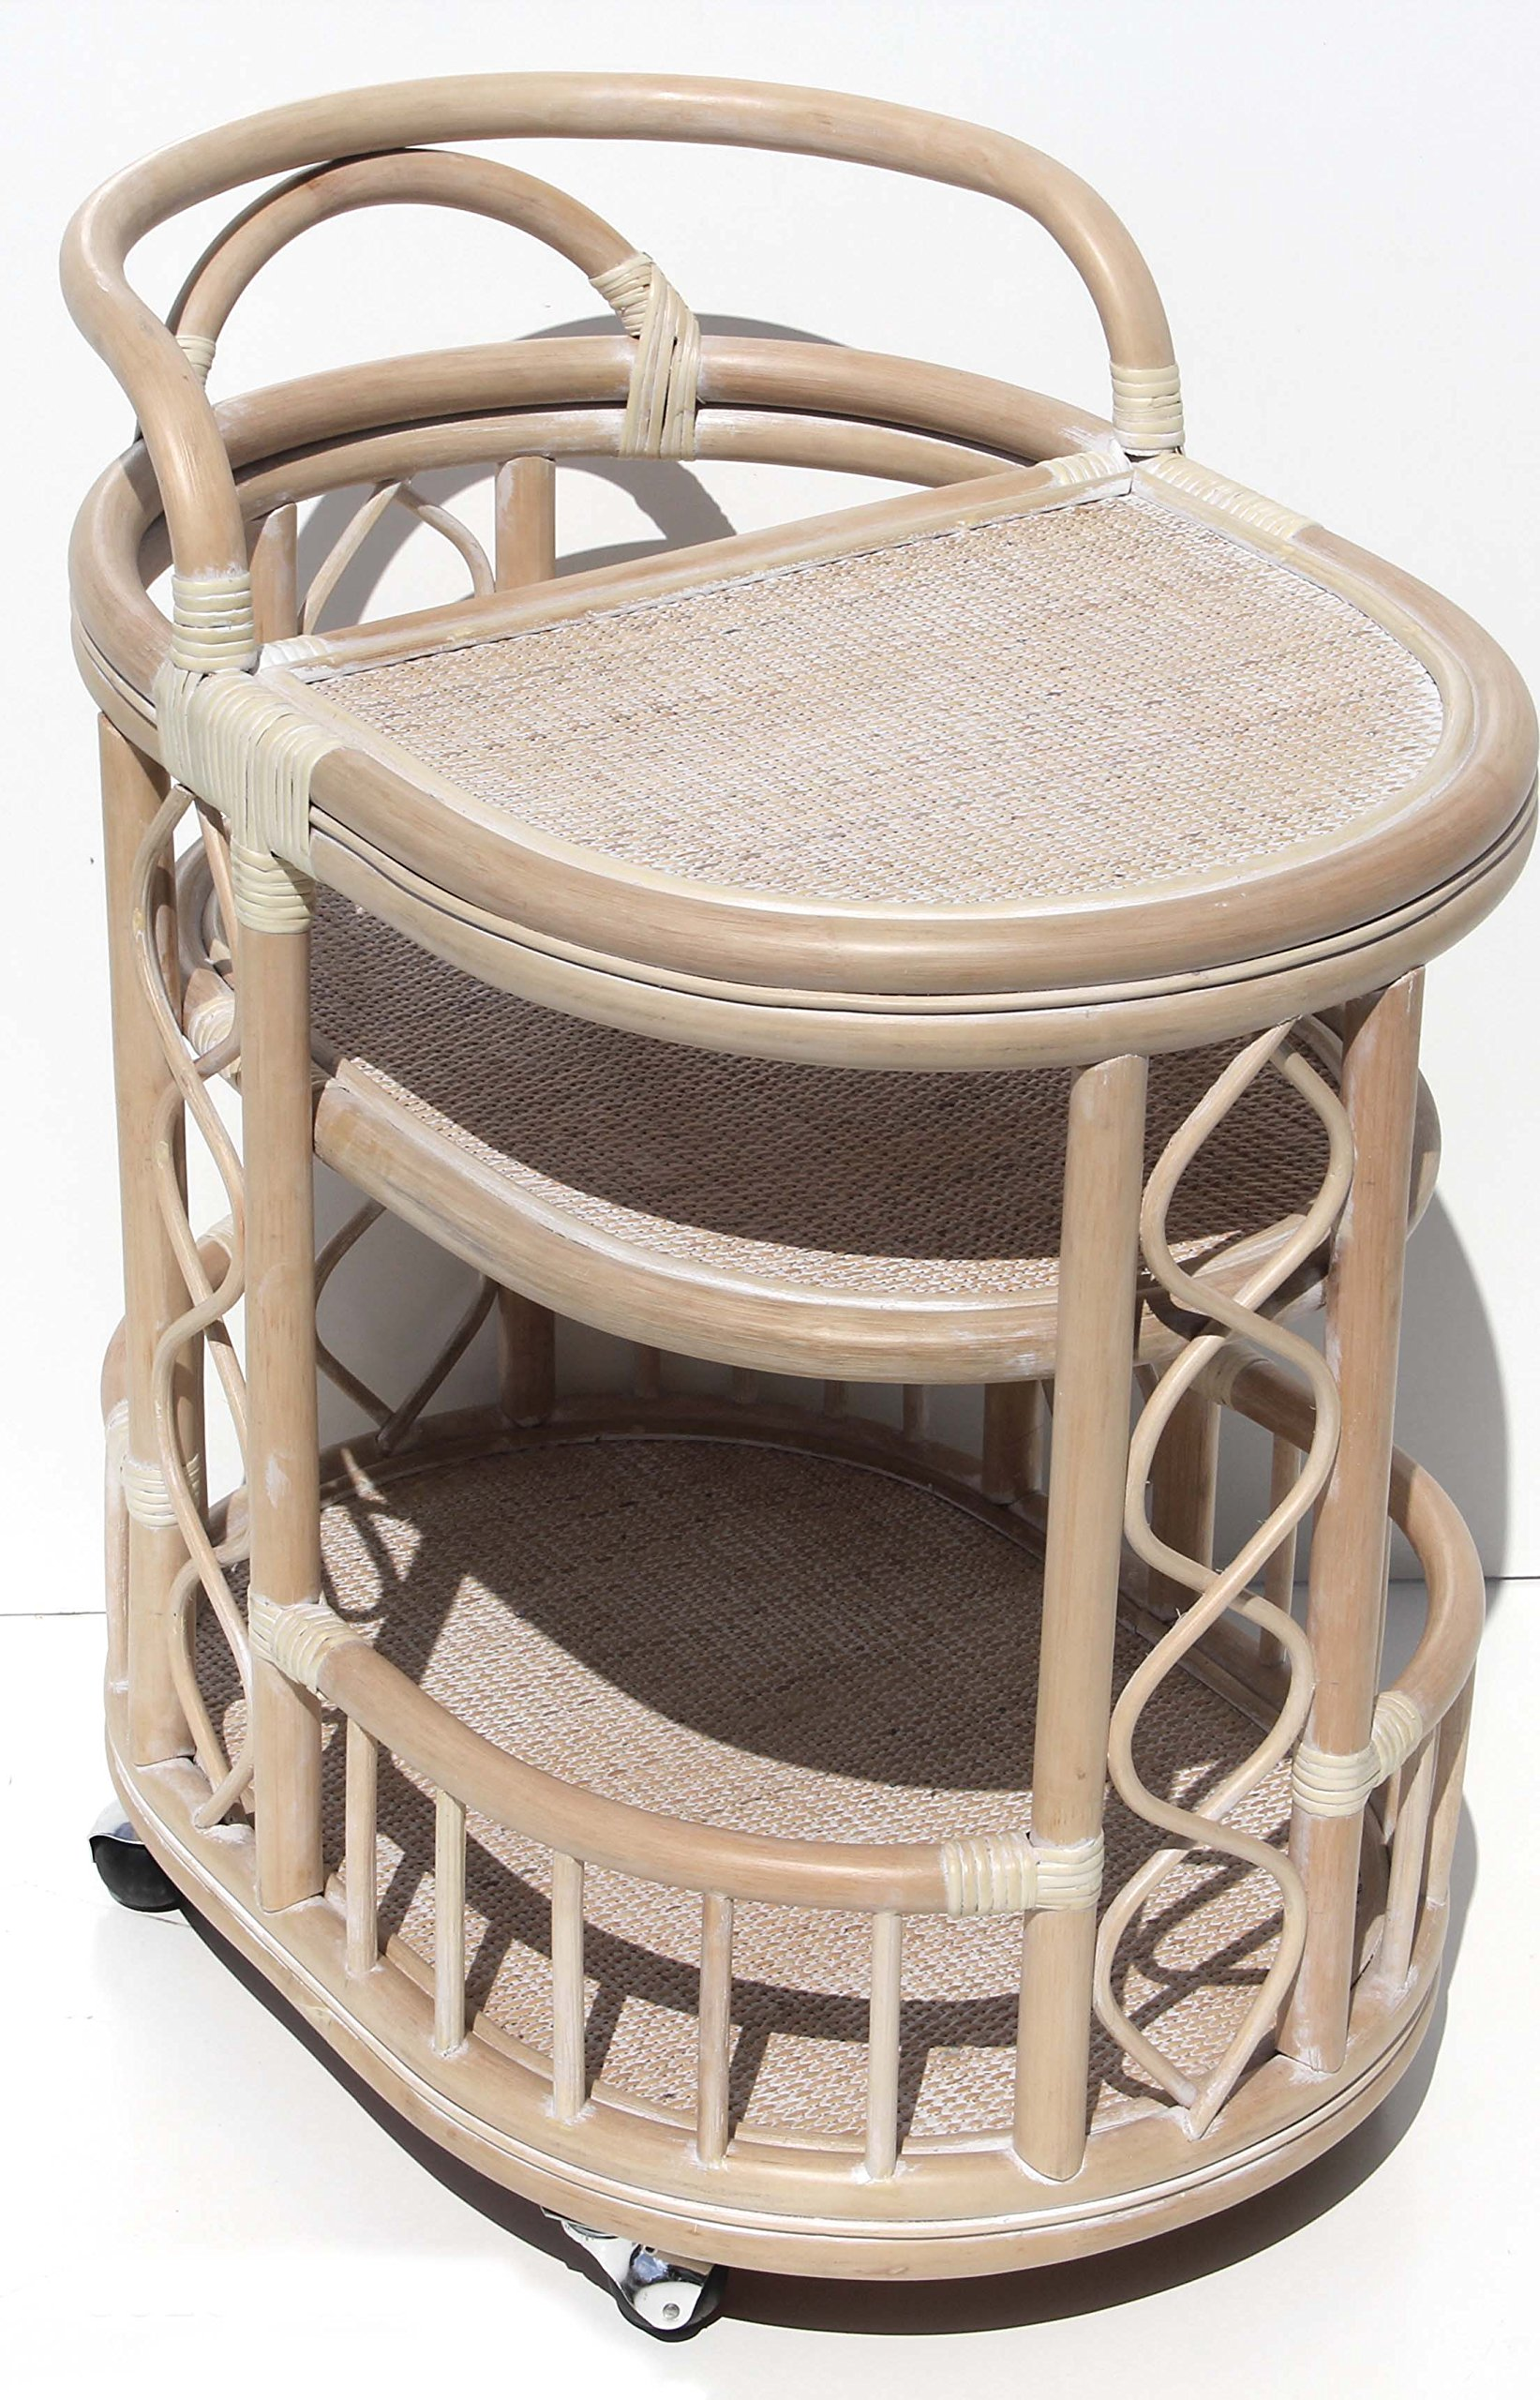 Moving Serving Cart Bar Table Natural Rattan Wicker Exclusive Handmade ECO, Cream